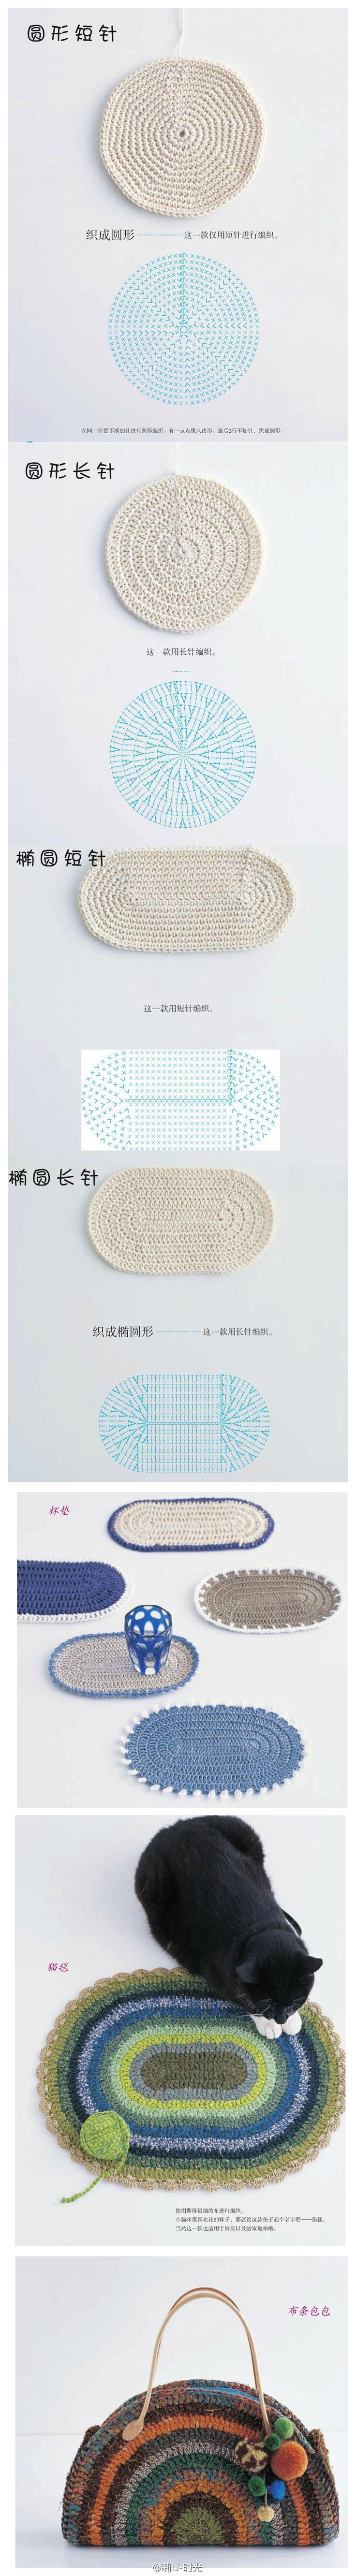 How to crochet different shapes like an oval and rectangle. Charts!